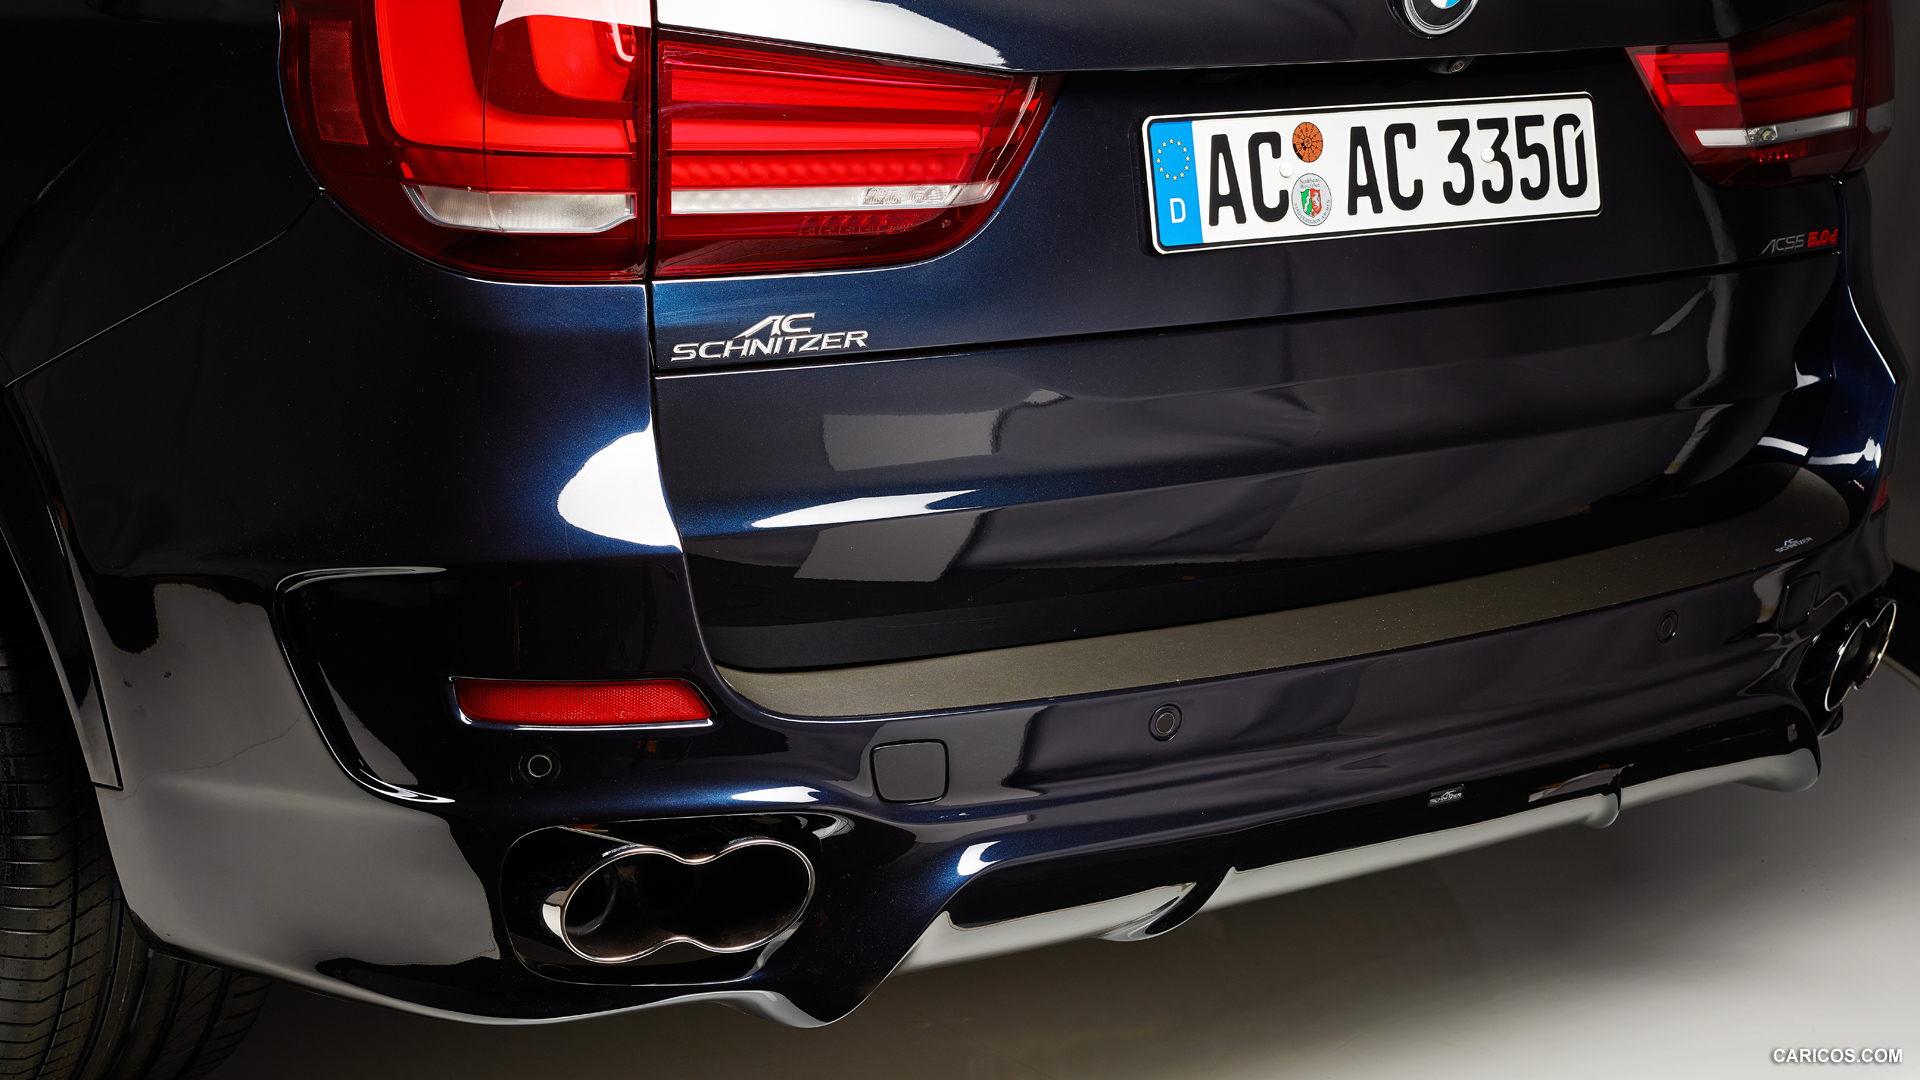 Ac Schnitzer Bmw X5 Photos Photogallery With 16 Pics Carsbase Com